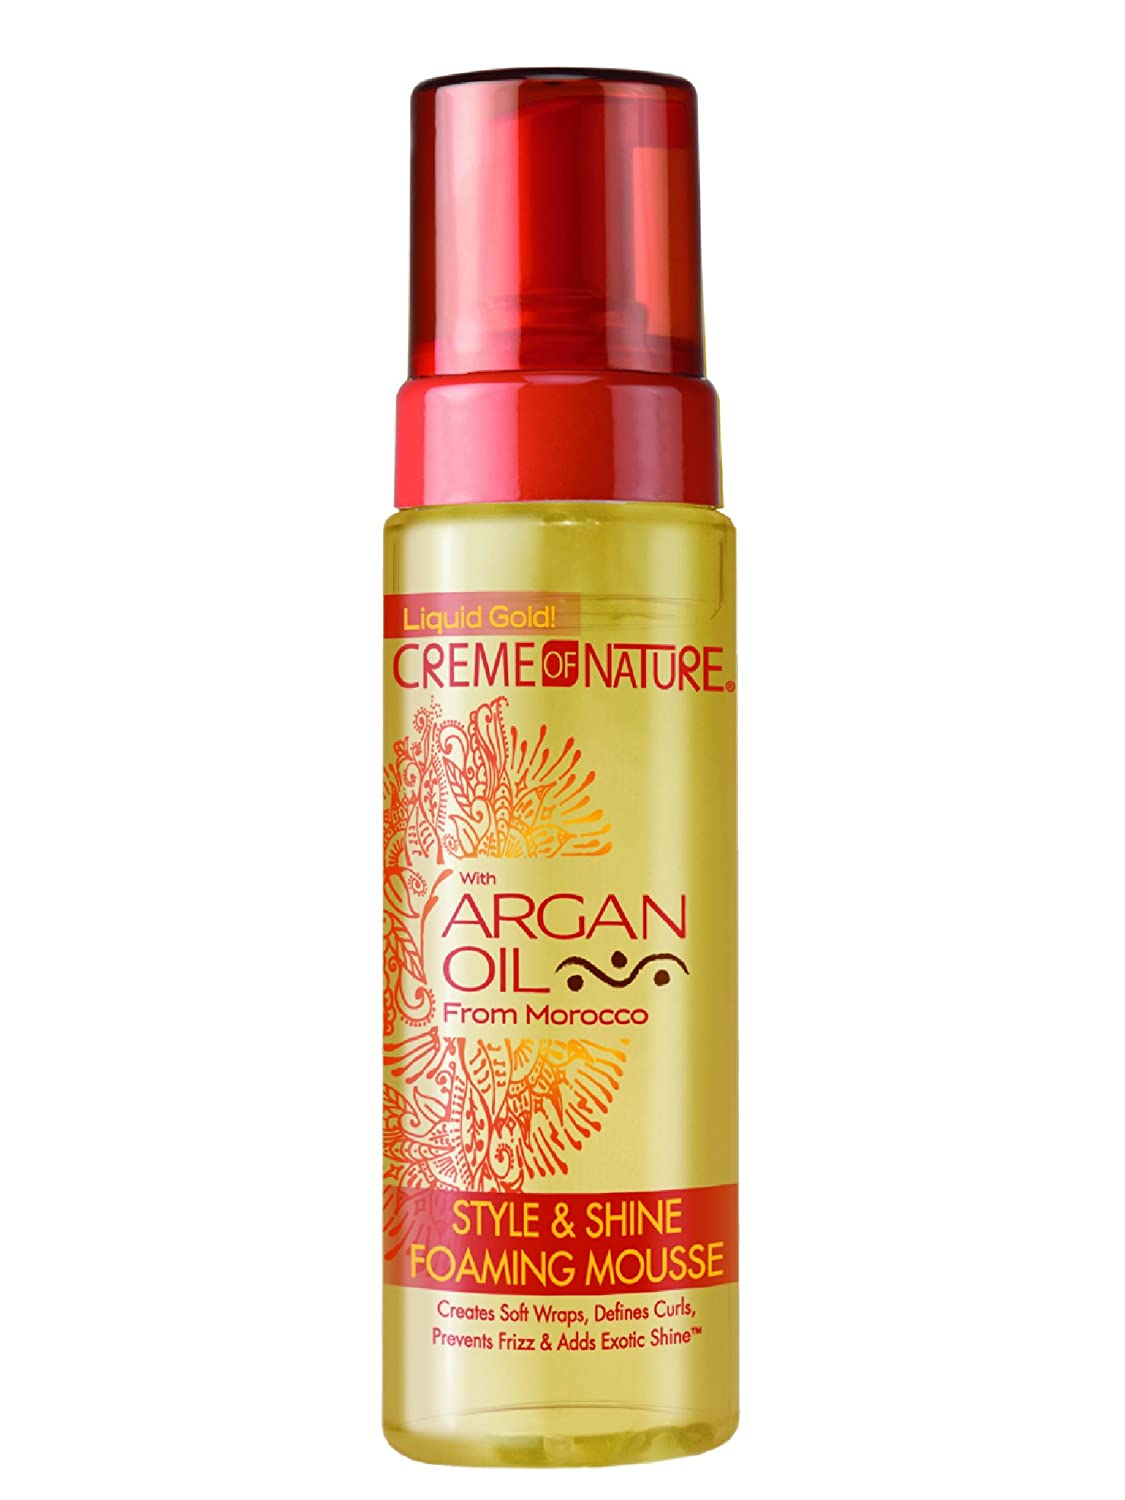 Creme of Nature Argan Oil Style and Shine Foaming Hair Mousse